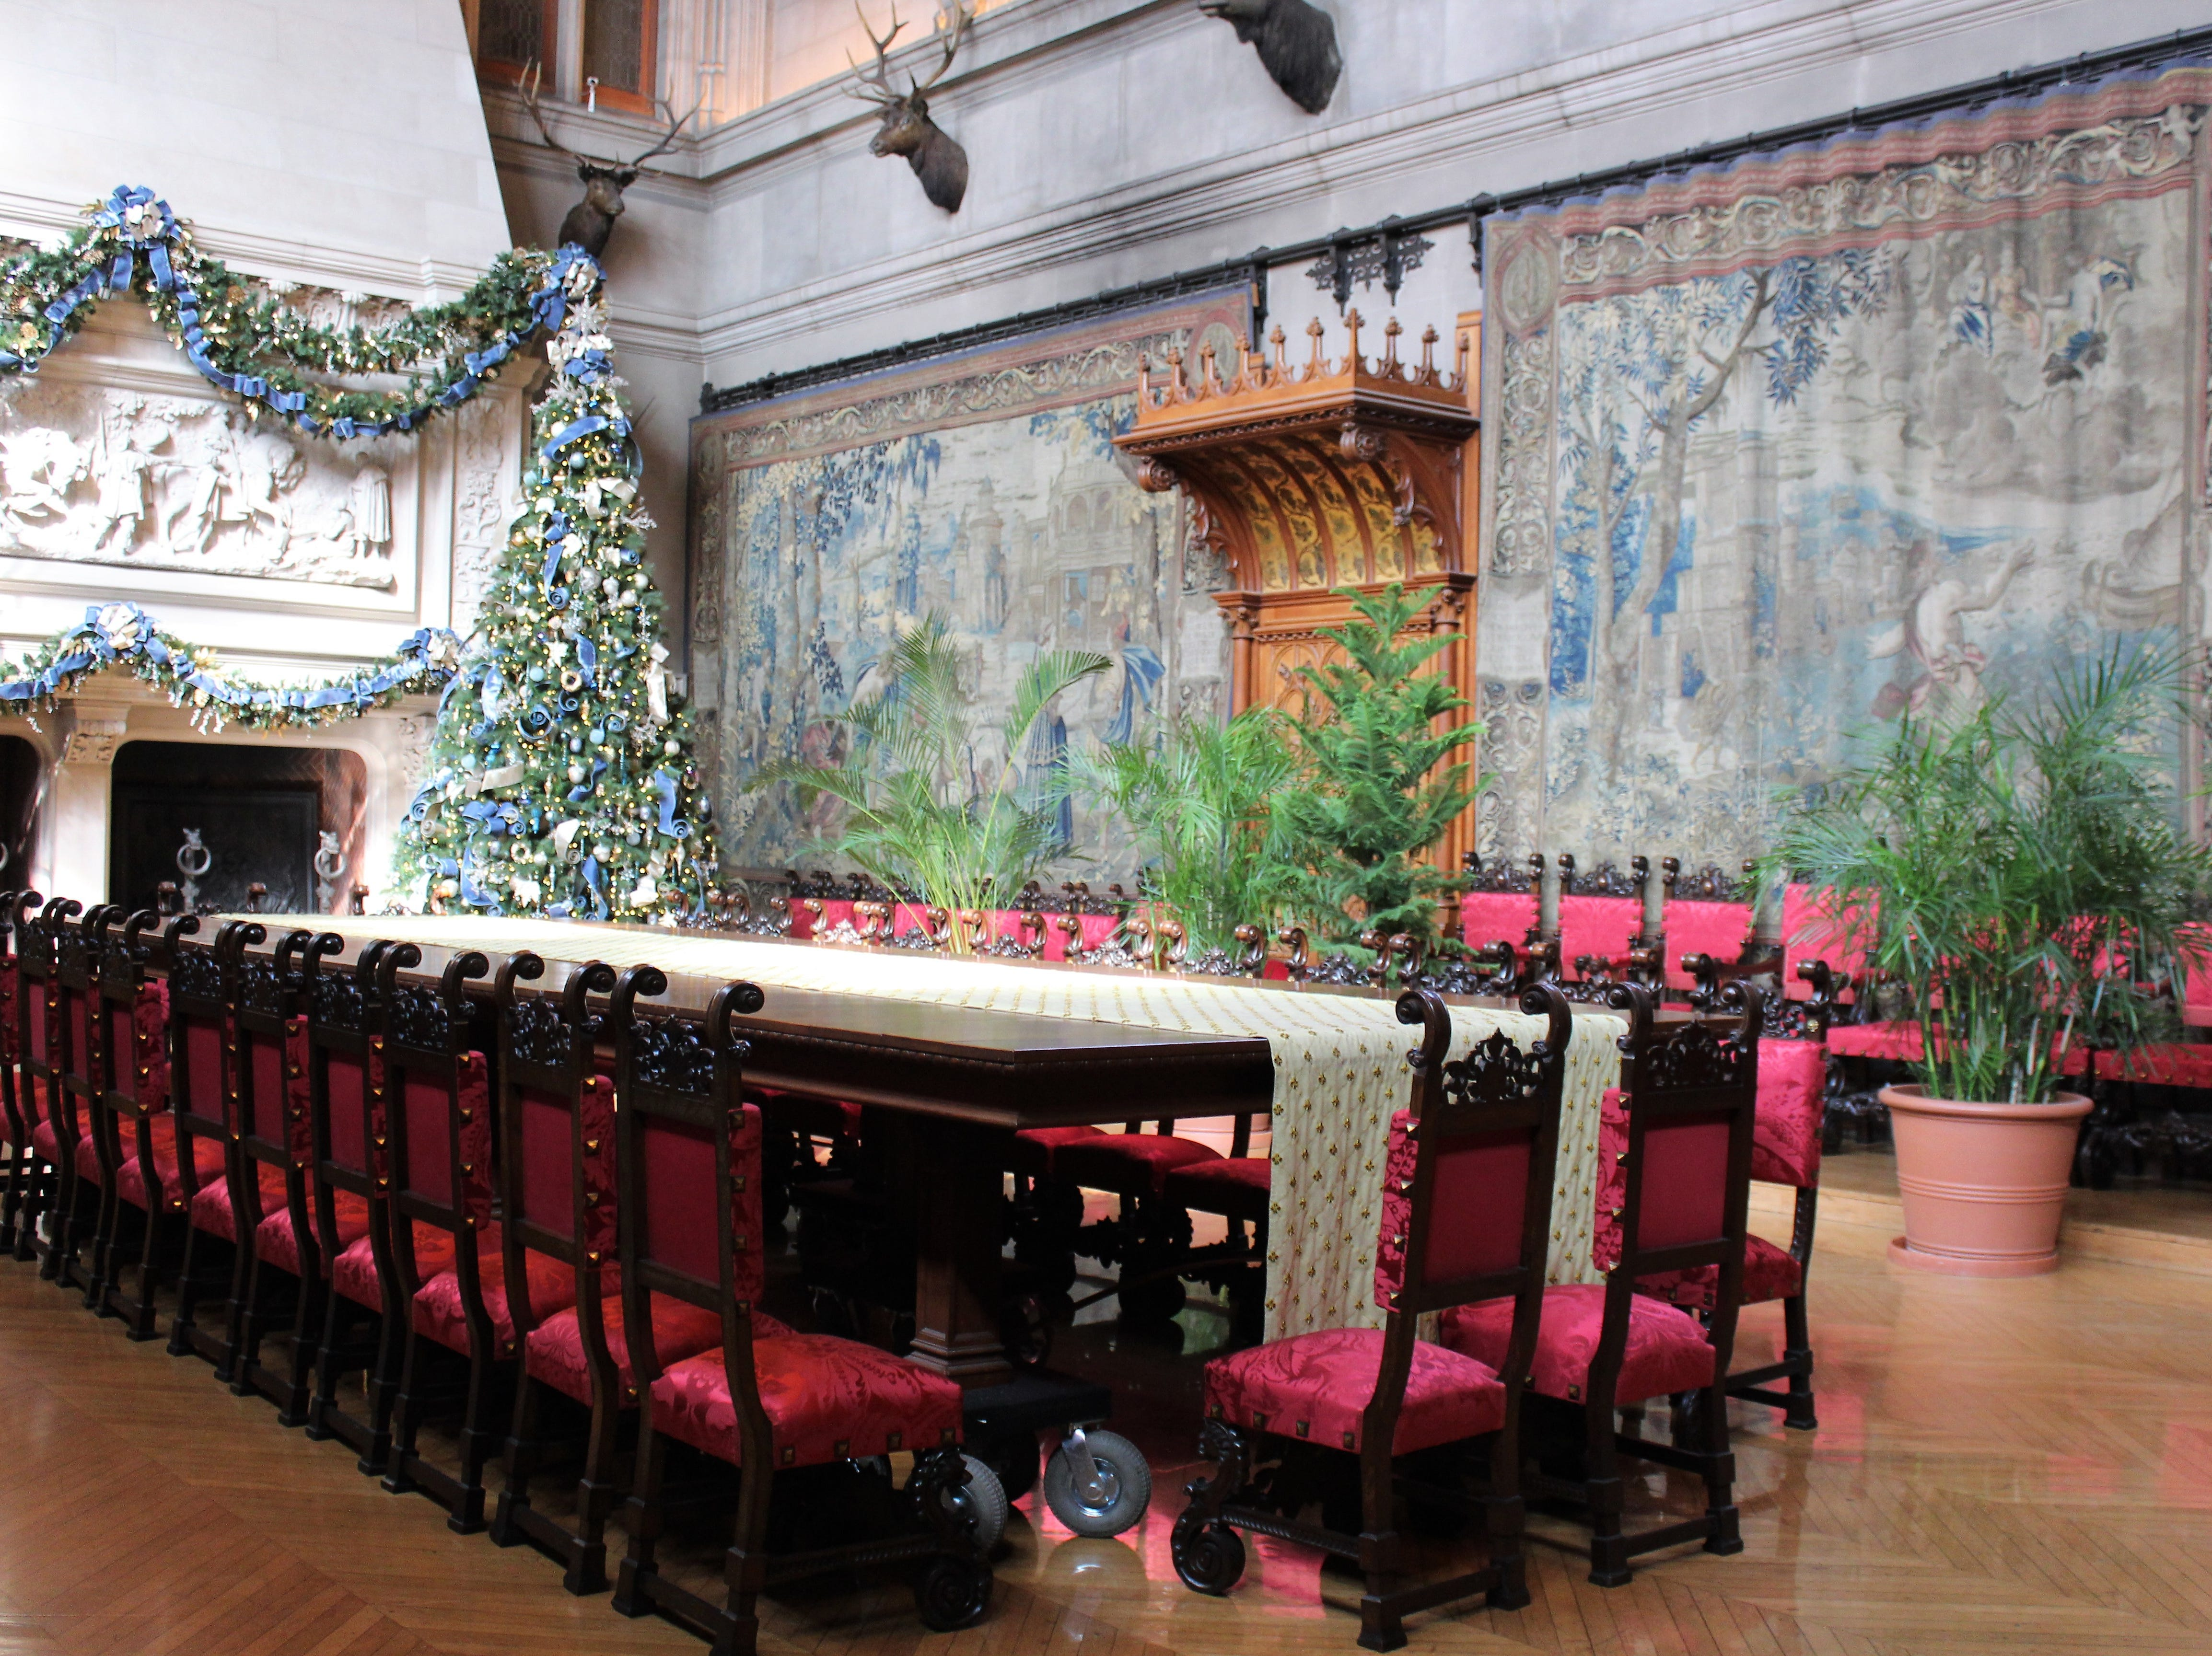 Straight out of Hogwarts, this huge dining room at Biltmore House already was decorated for Christmas and where the annual Christmas tree is placed.